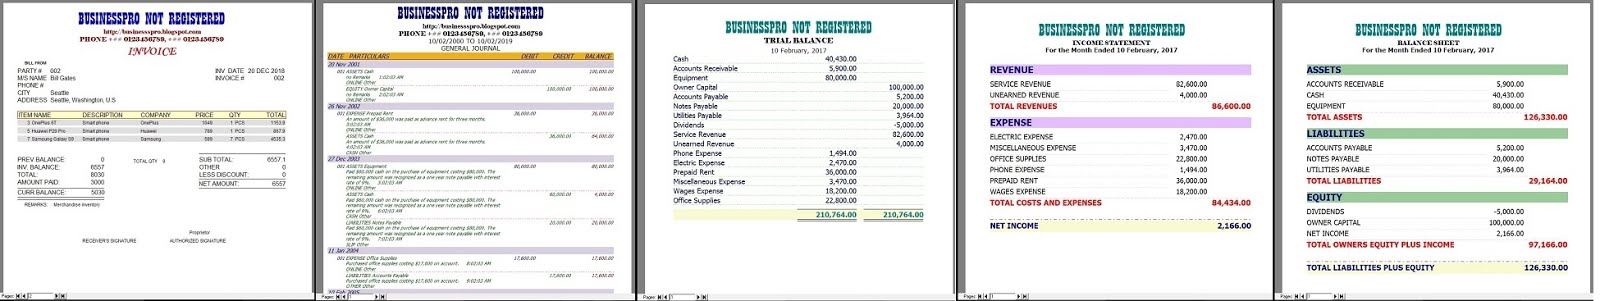 BUSINESSPRO Easiest Accounting Software